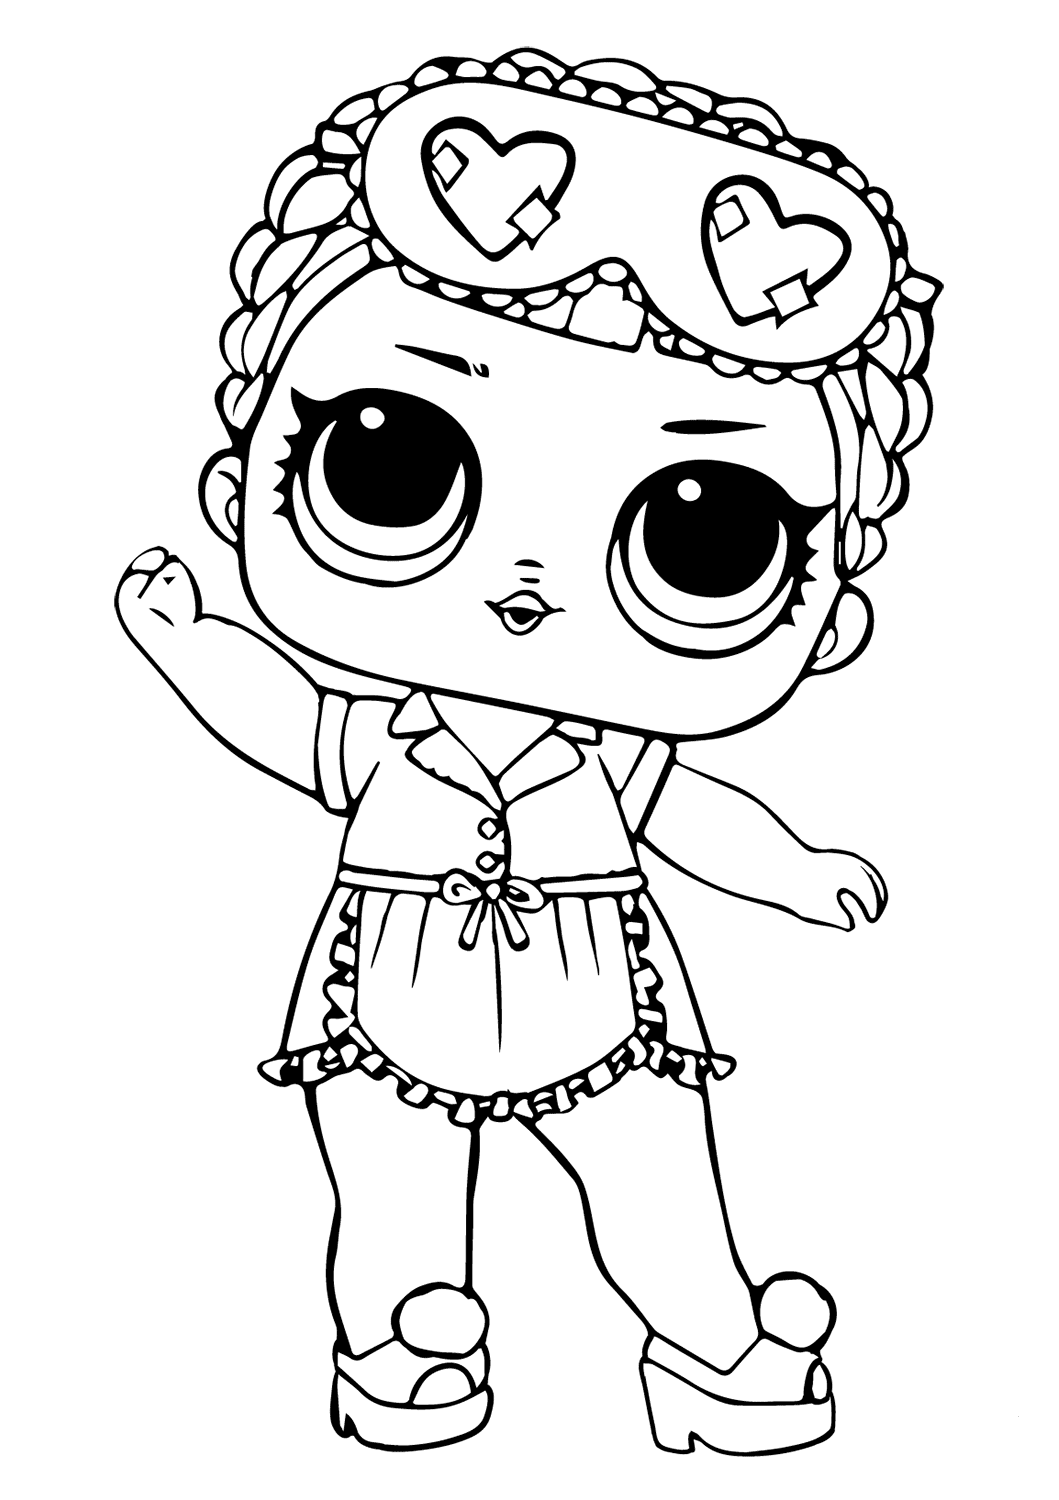 coloring sheets lol lol surprise coloring pages print and colorcom sheets lol coloring